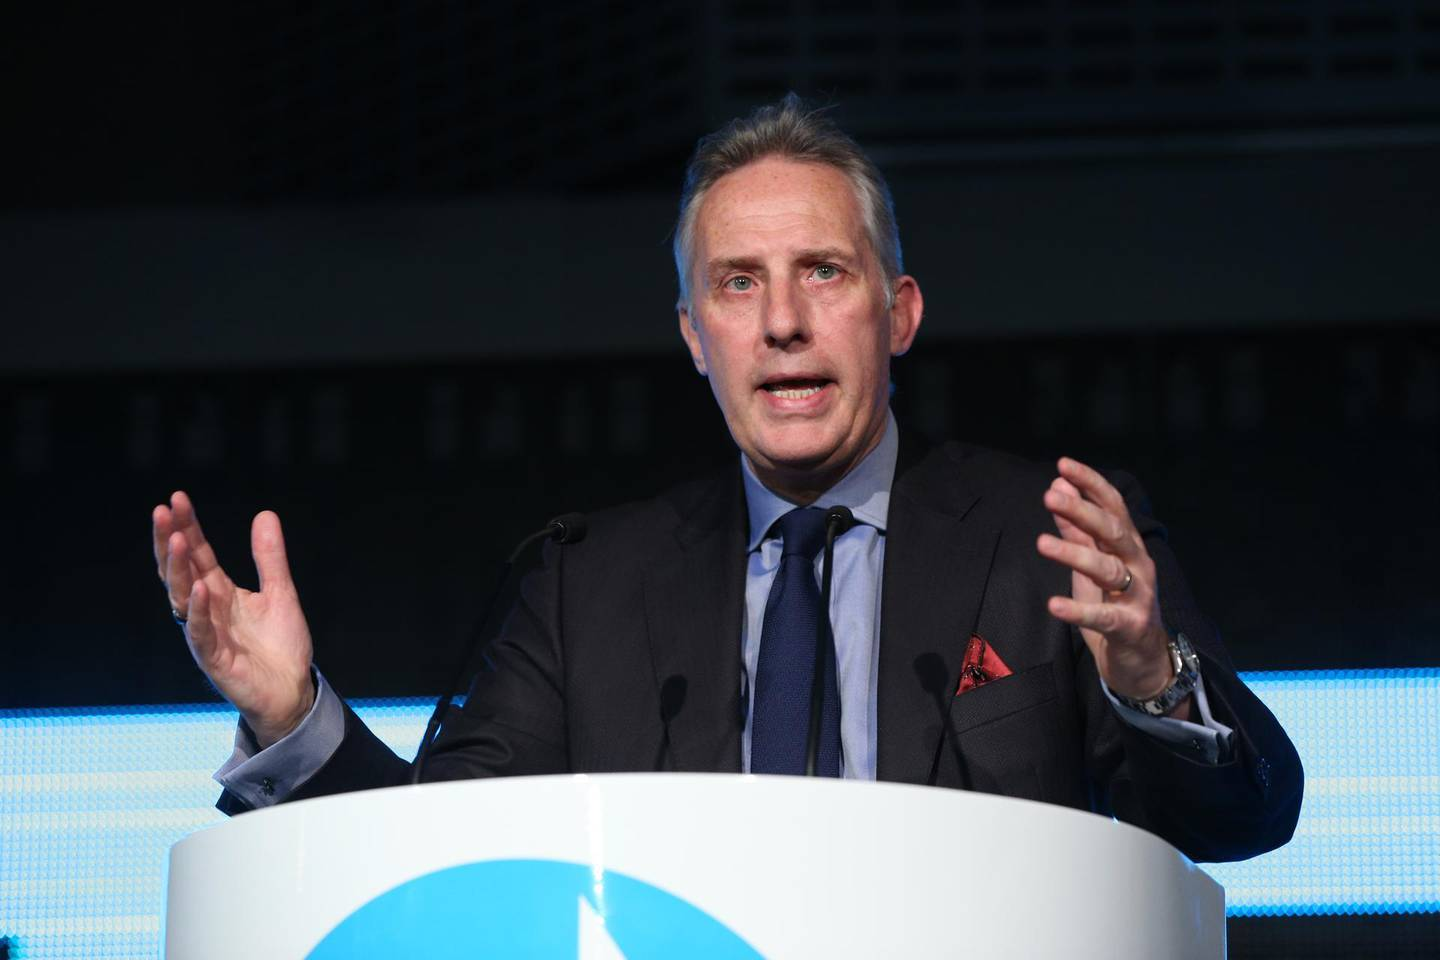 Ian Paisley Jr speaking during a Brexit Party event at the QEII Centre in London. PA Images via Reuters